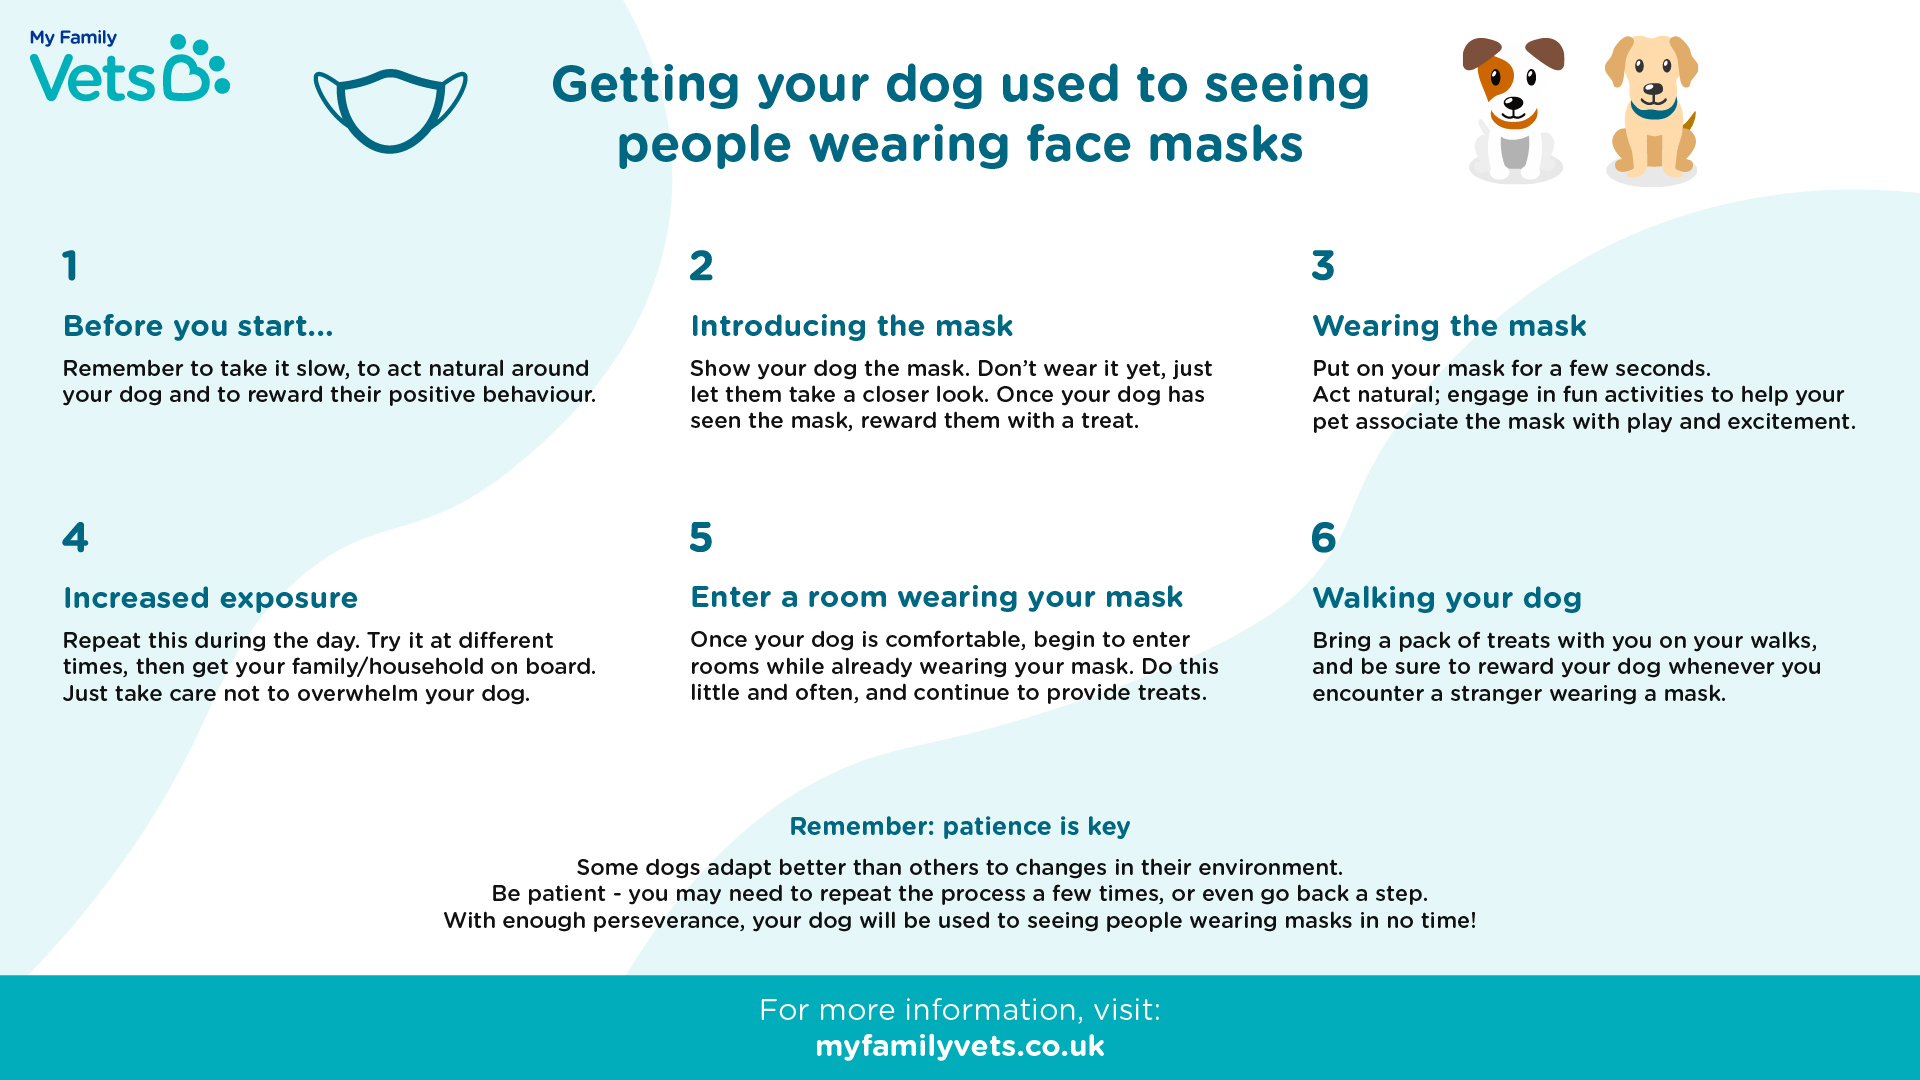 infographic detailing steps to getting dogs used to seeing masks